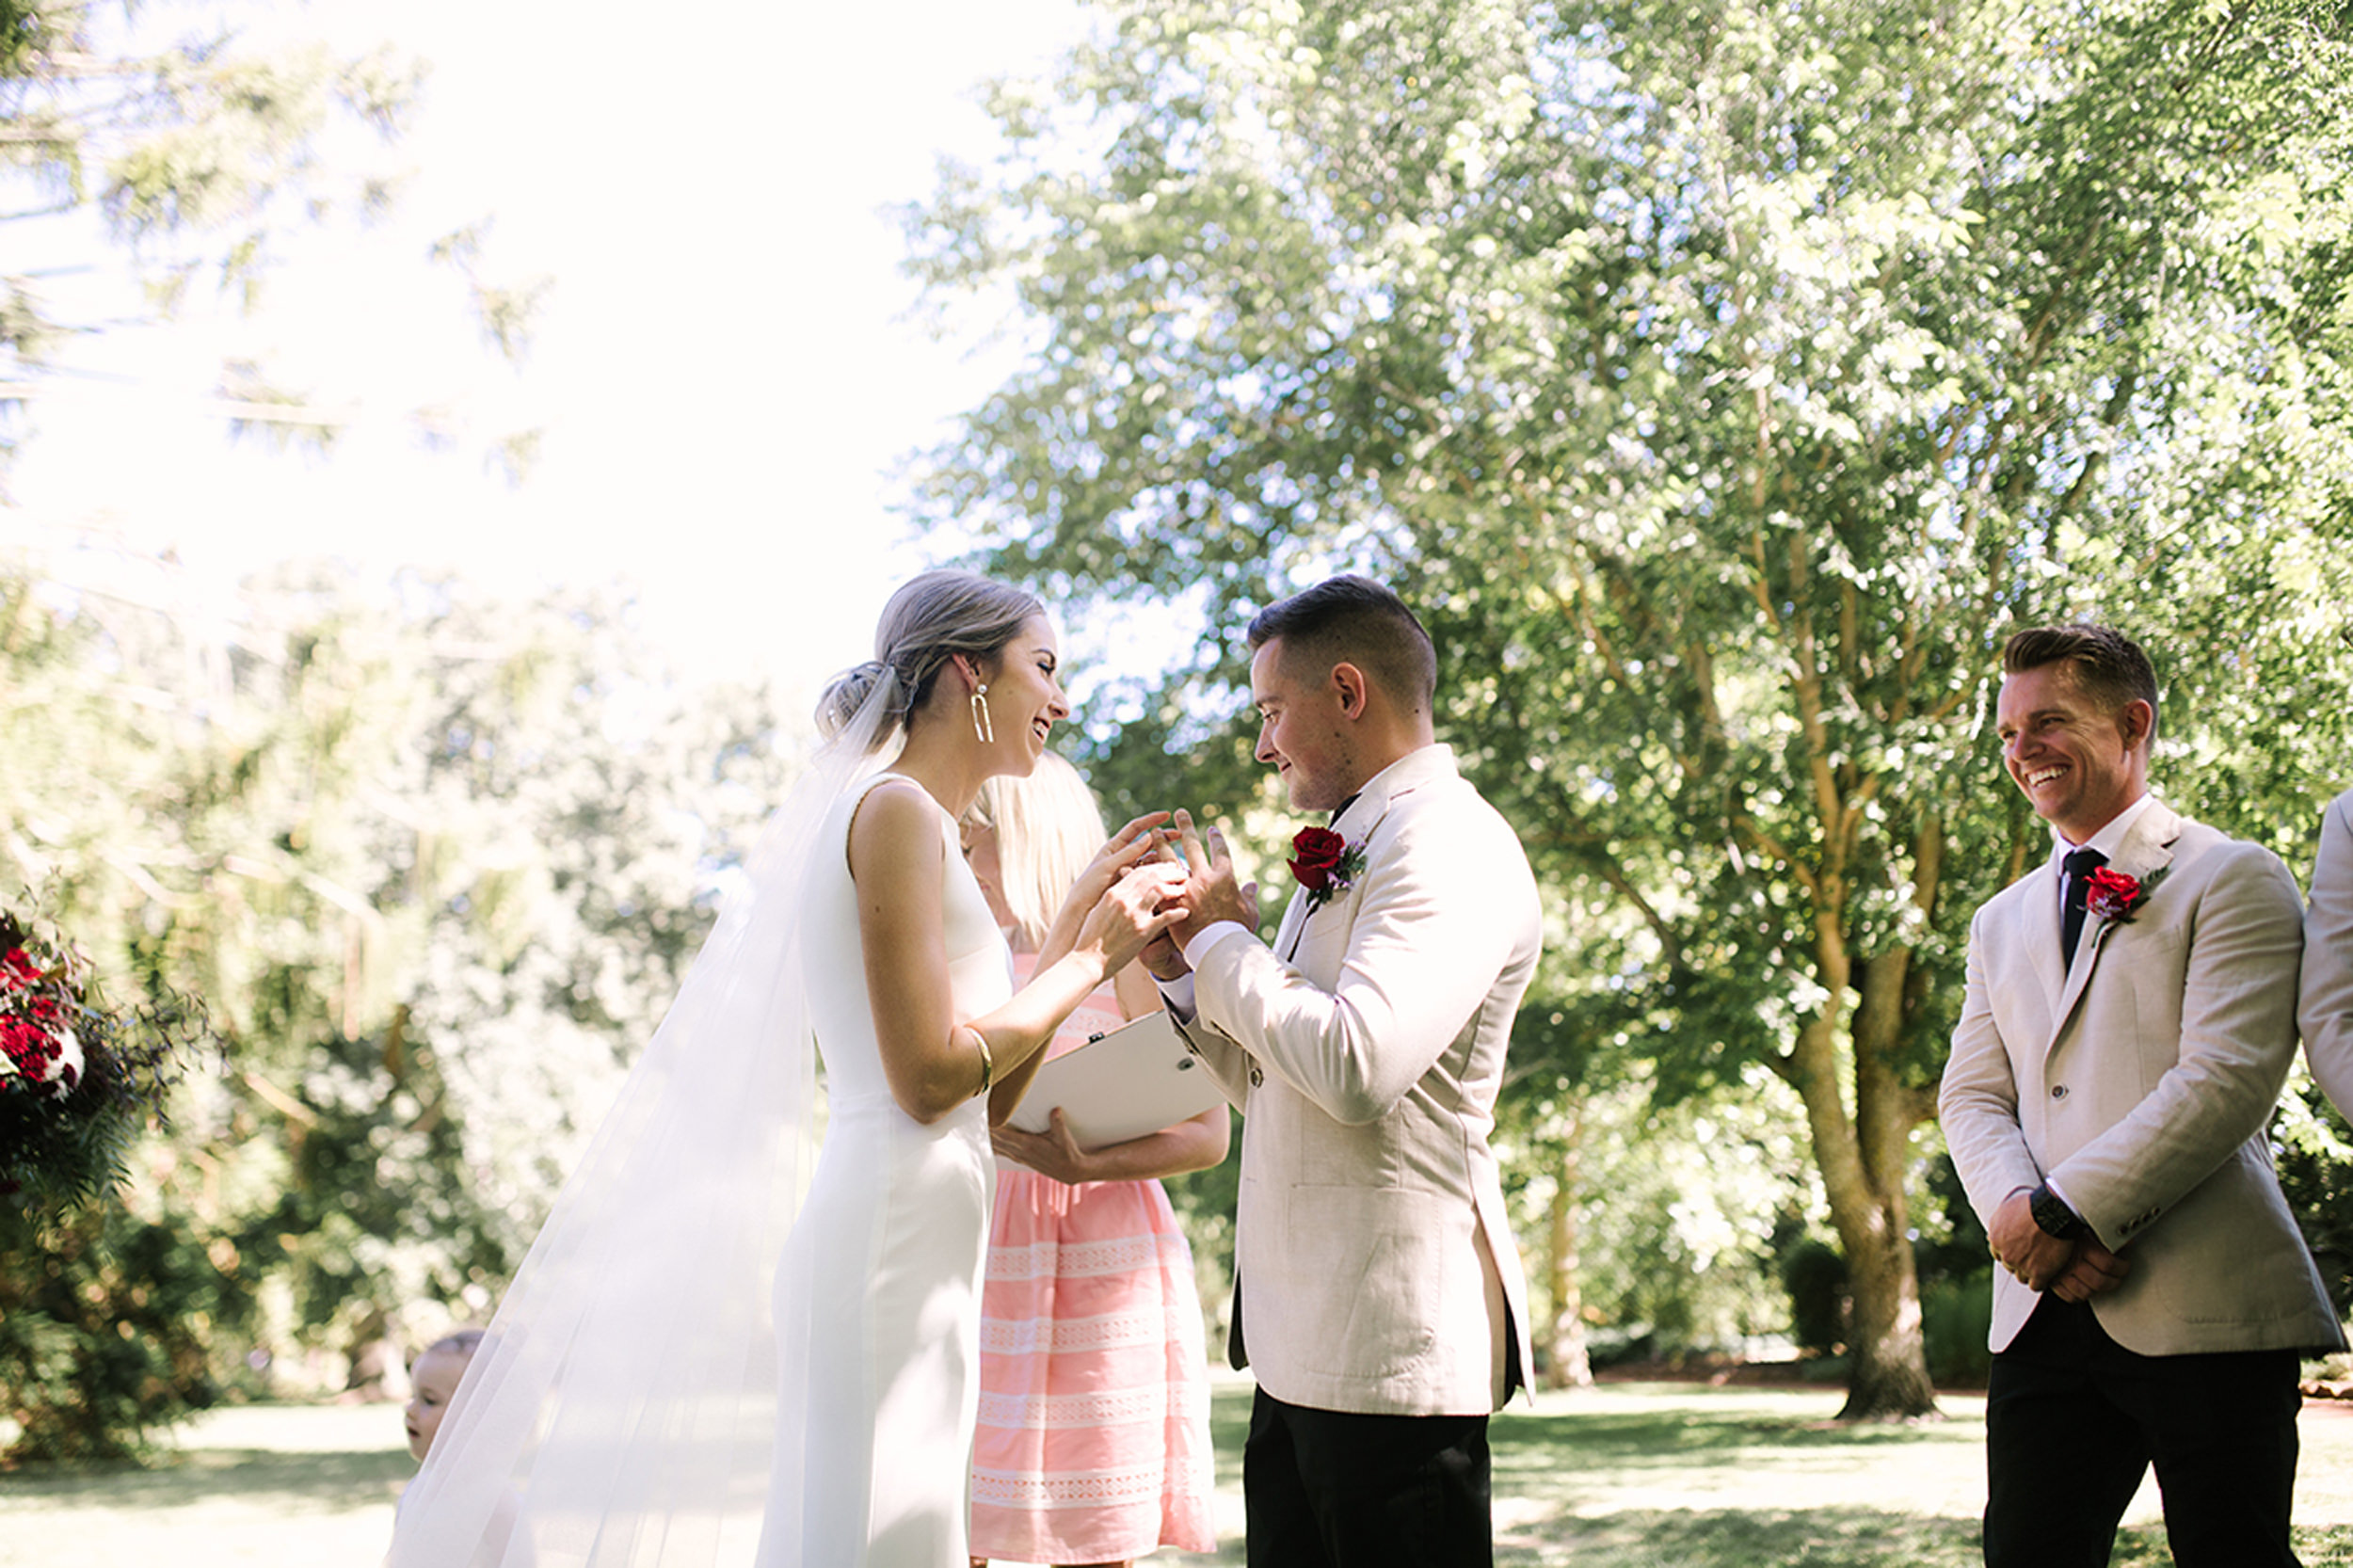 I_Got_You_Babe_Co._Megan_Andrew_Country_Property_Wedding_Victoria0043.JPG